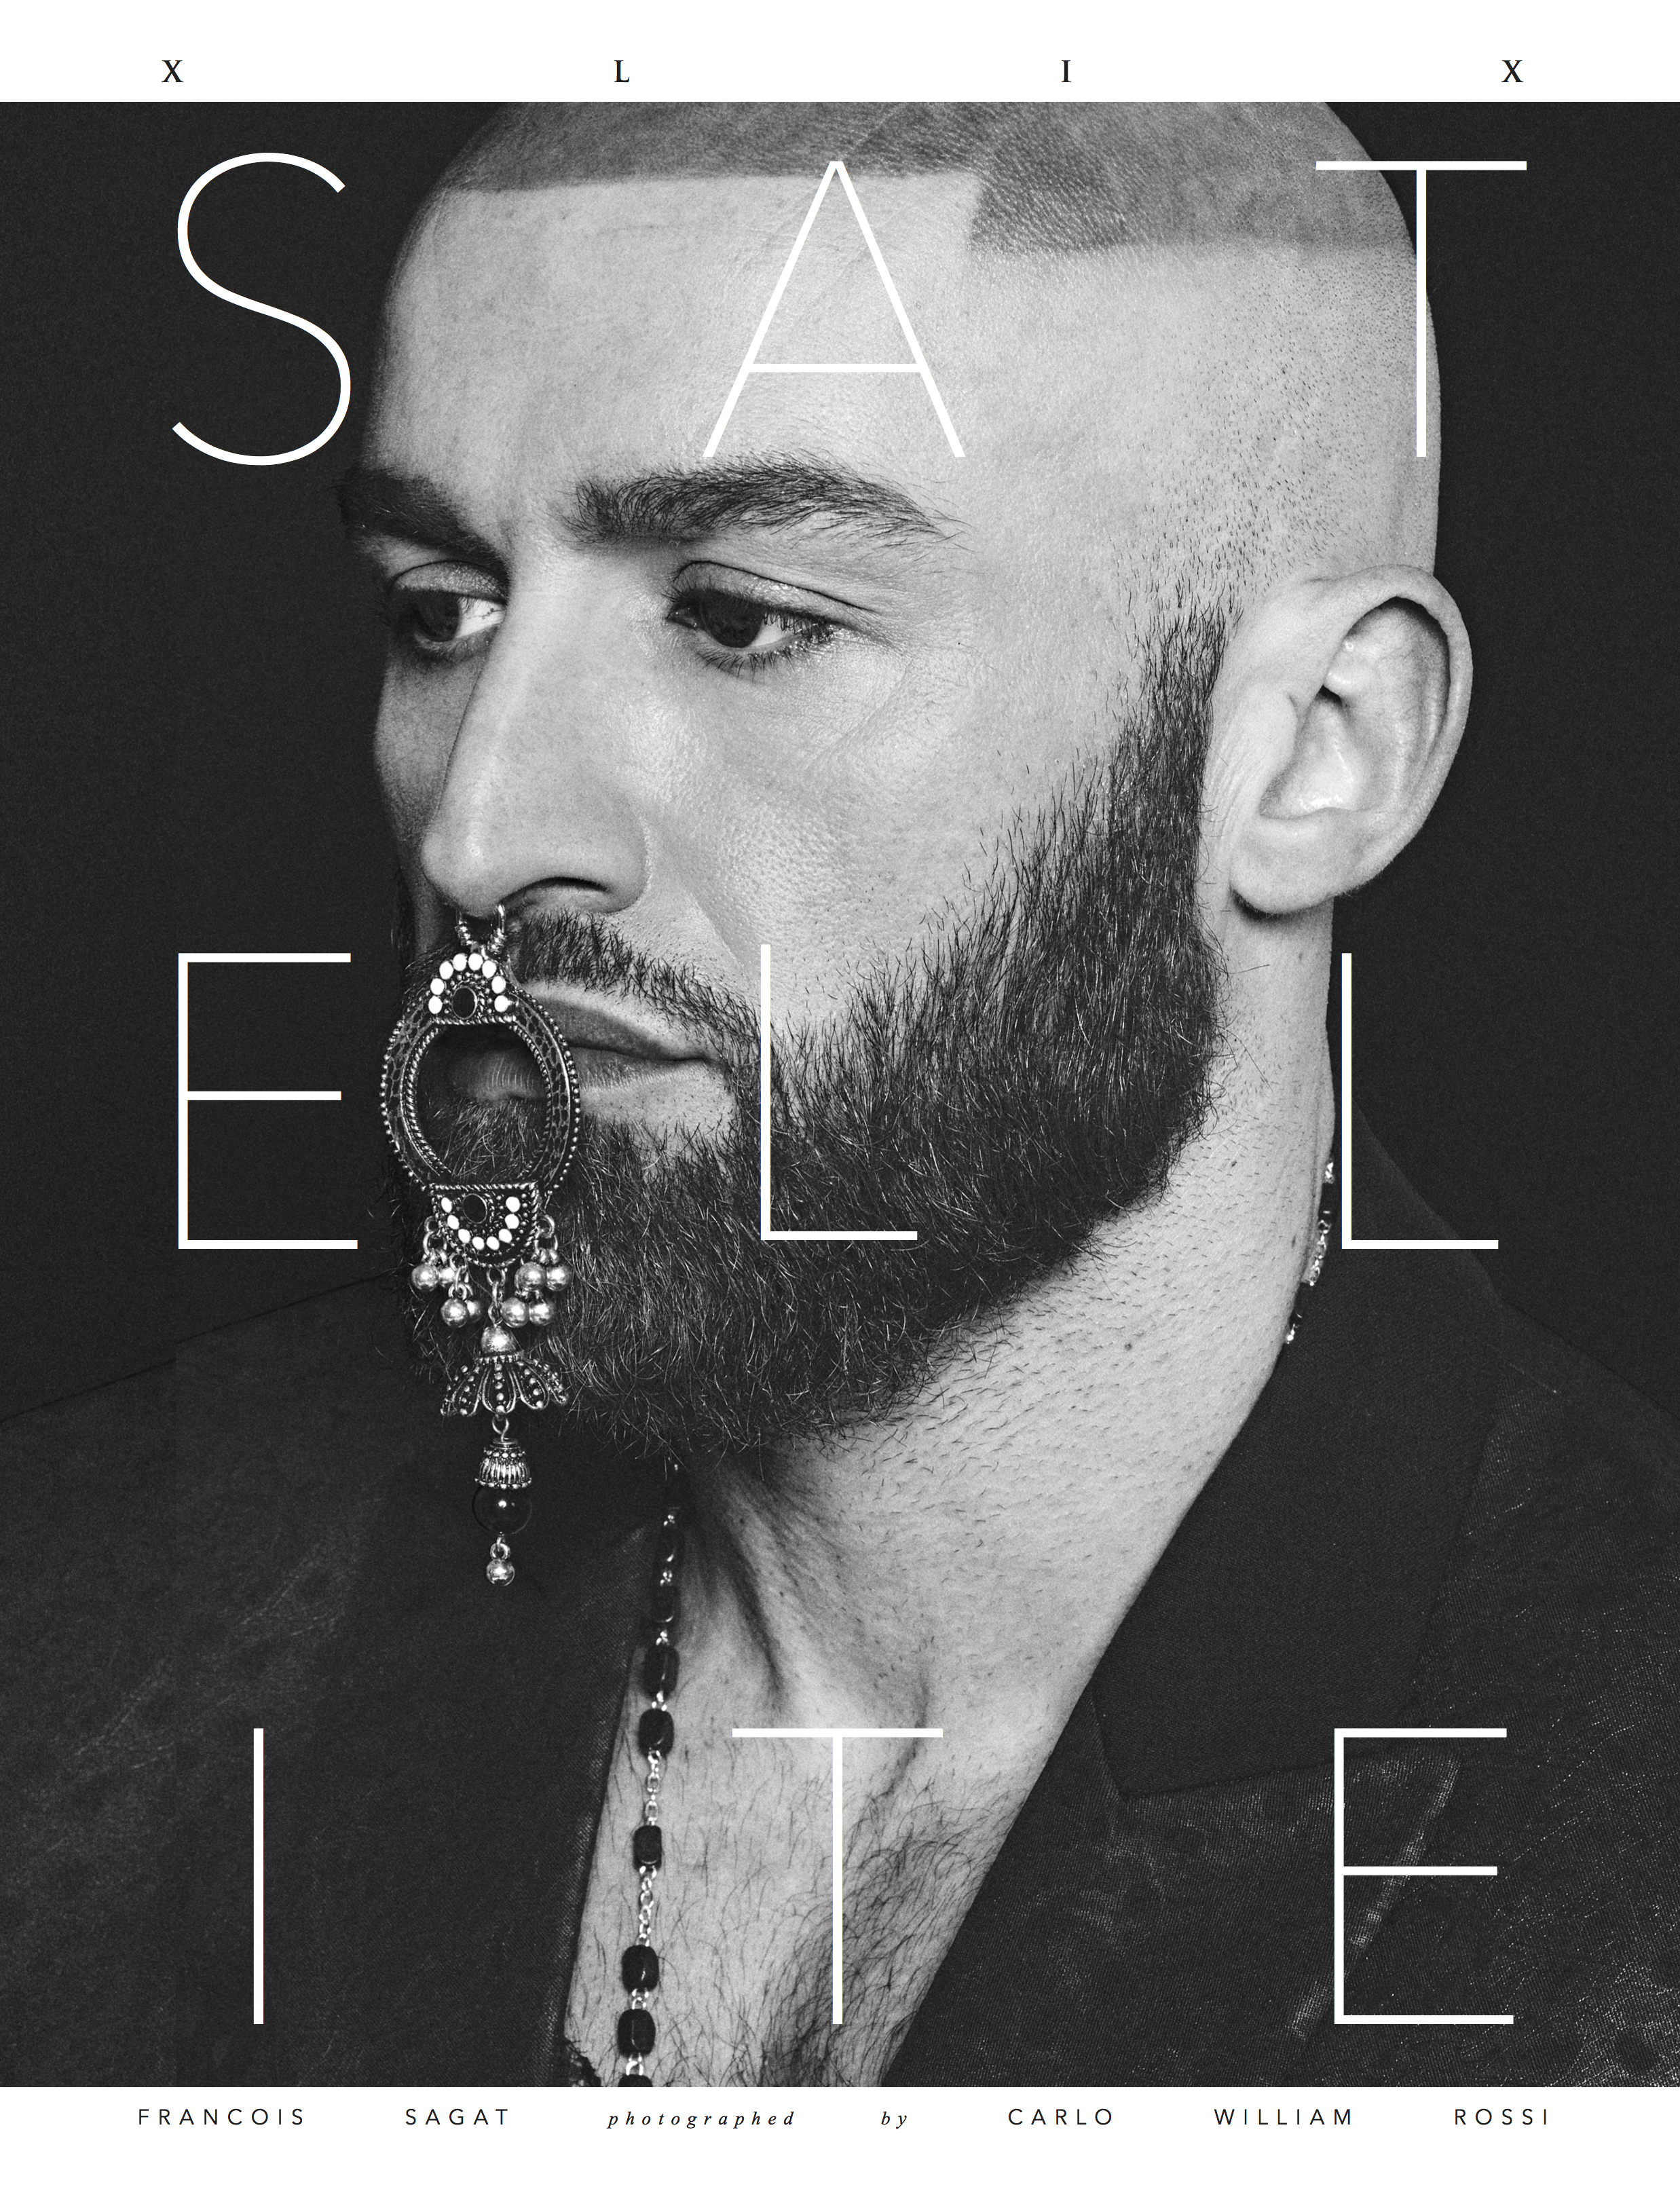 SATELLITE_MAGAZINE_Satellite_No_XLIX_Carlo_William_Rossi